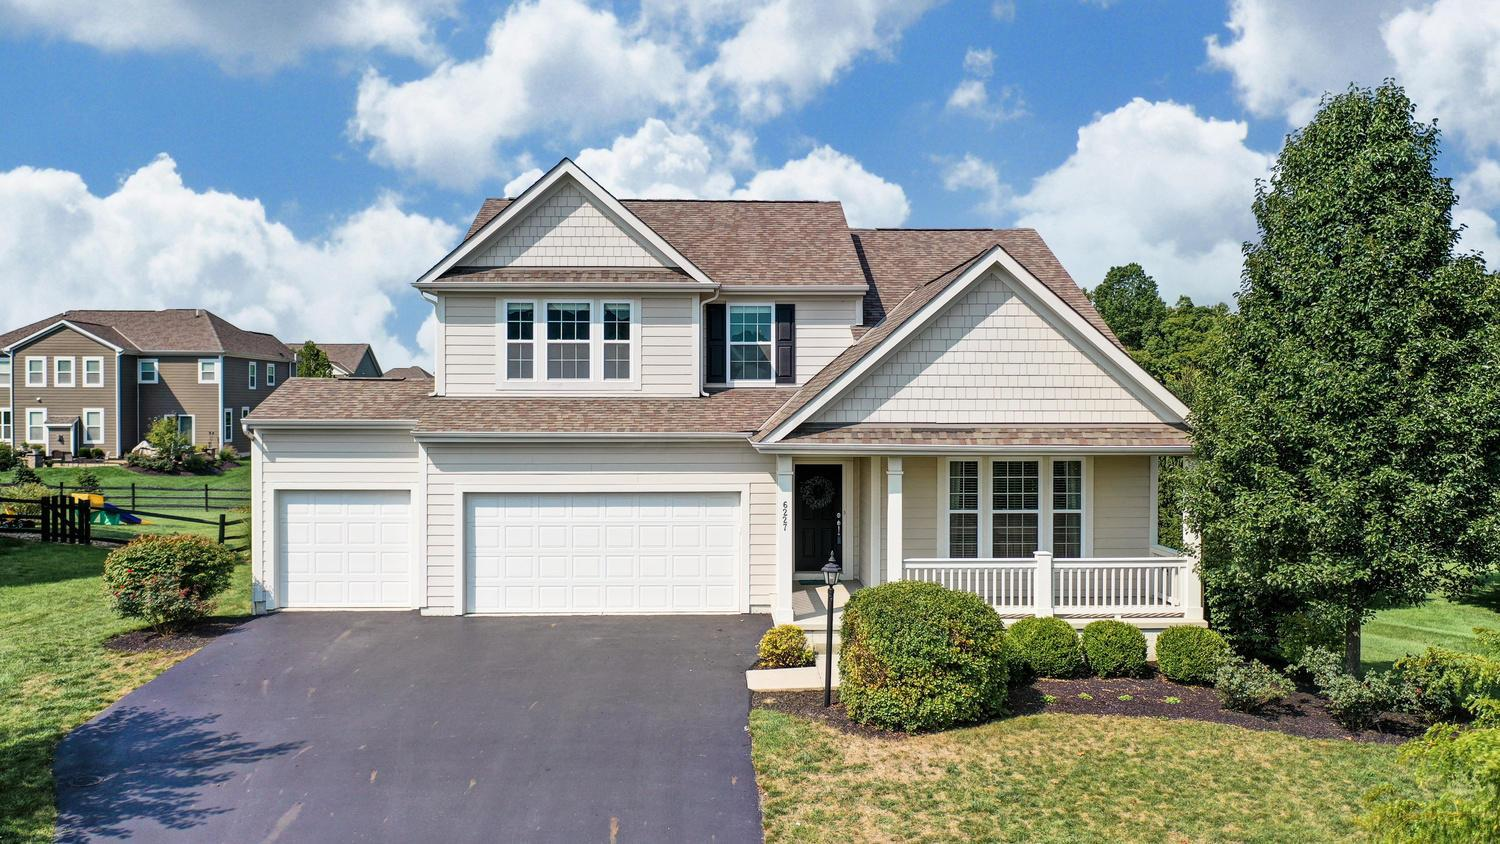 6227 Fox Hollow Drive, Galena, Ohio 43021, 4 Bedrooms Bedrooms, ,3 BathroomsBathrooms,Residential,For Sale,Fox Hollow,220031869